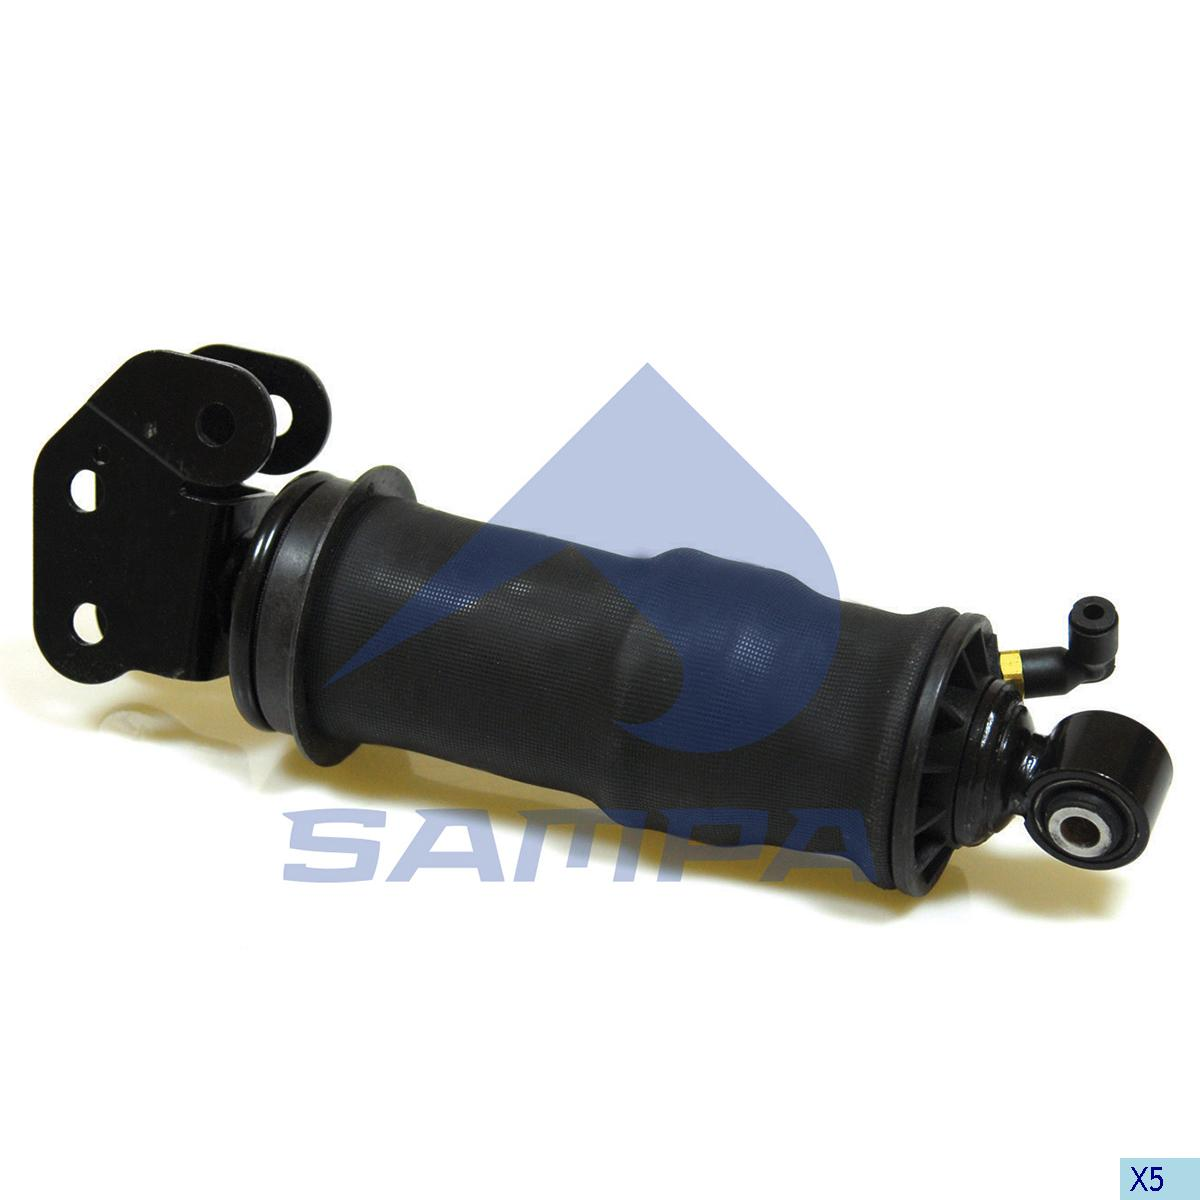 Shock Absorber, with Air Bellow, Cab, R.V.I., Cab